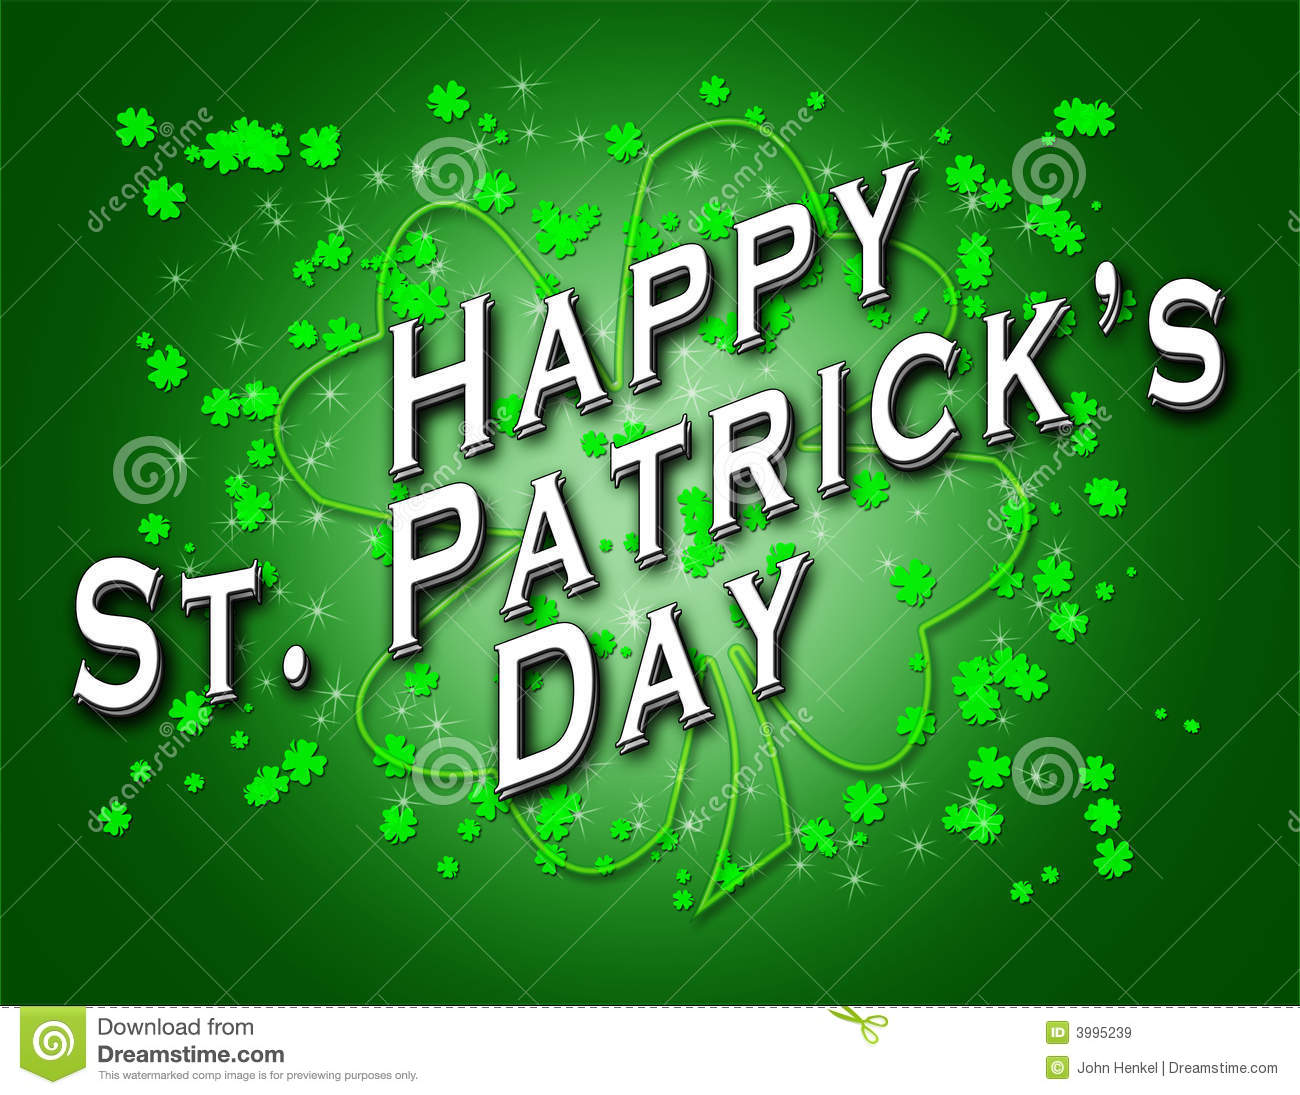 Happy Saint Patrick's Day Royalty Free Stock Images - Image: 3995239